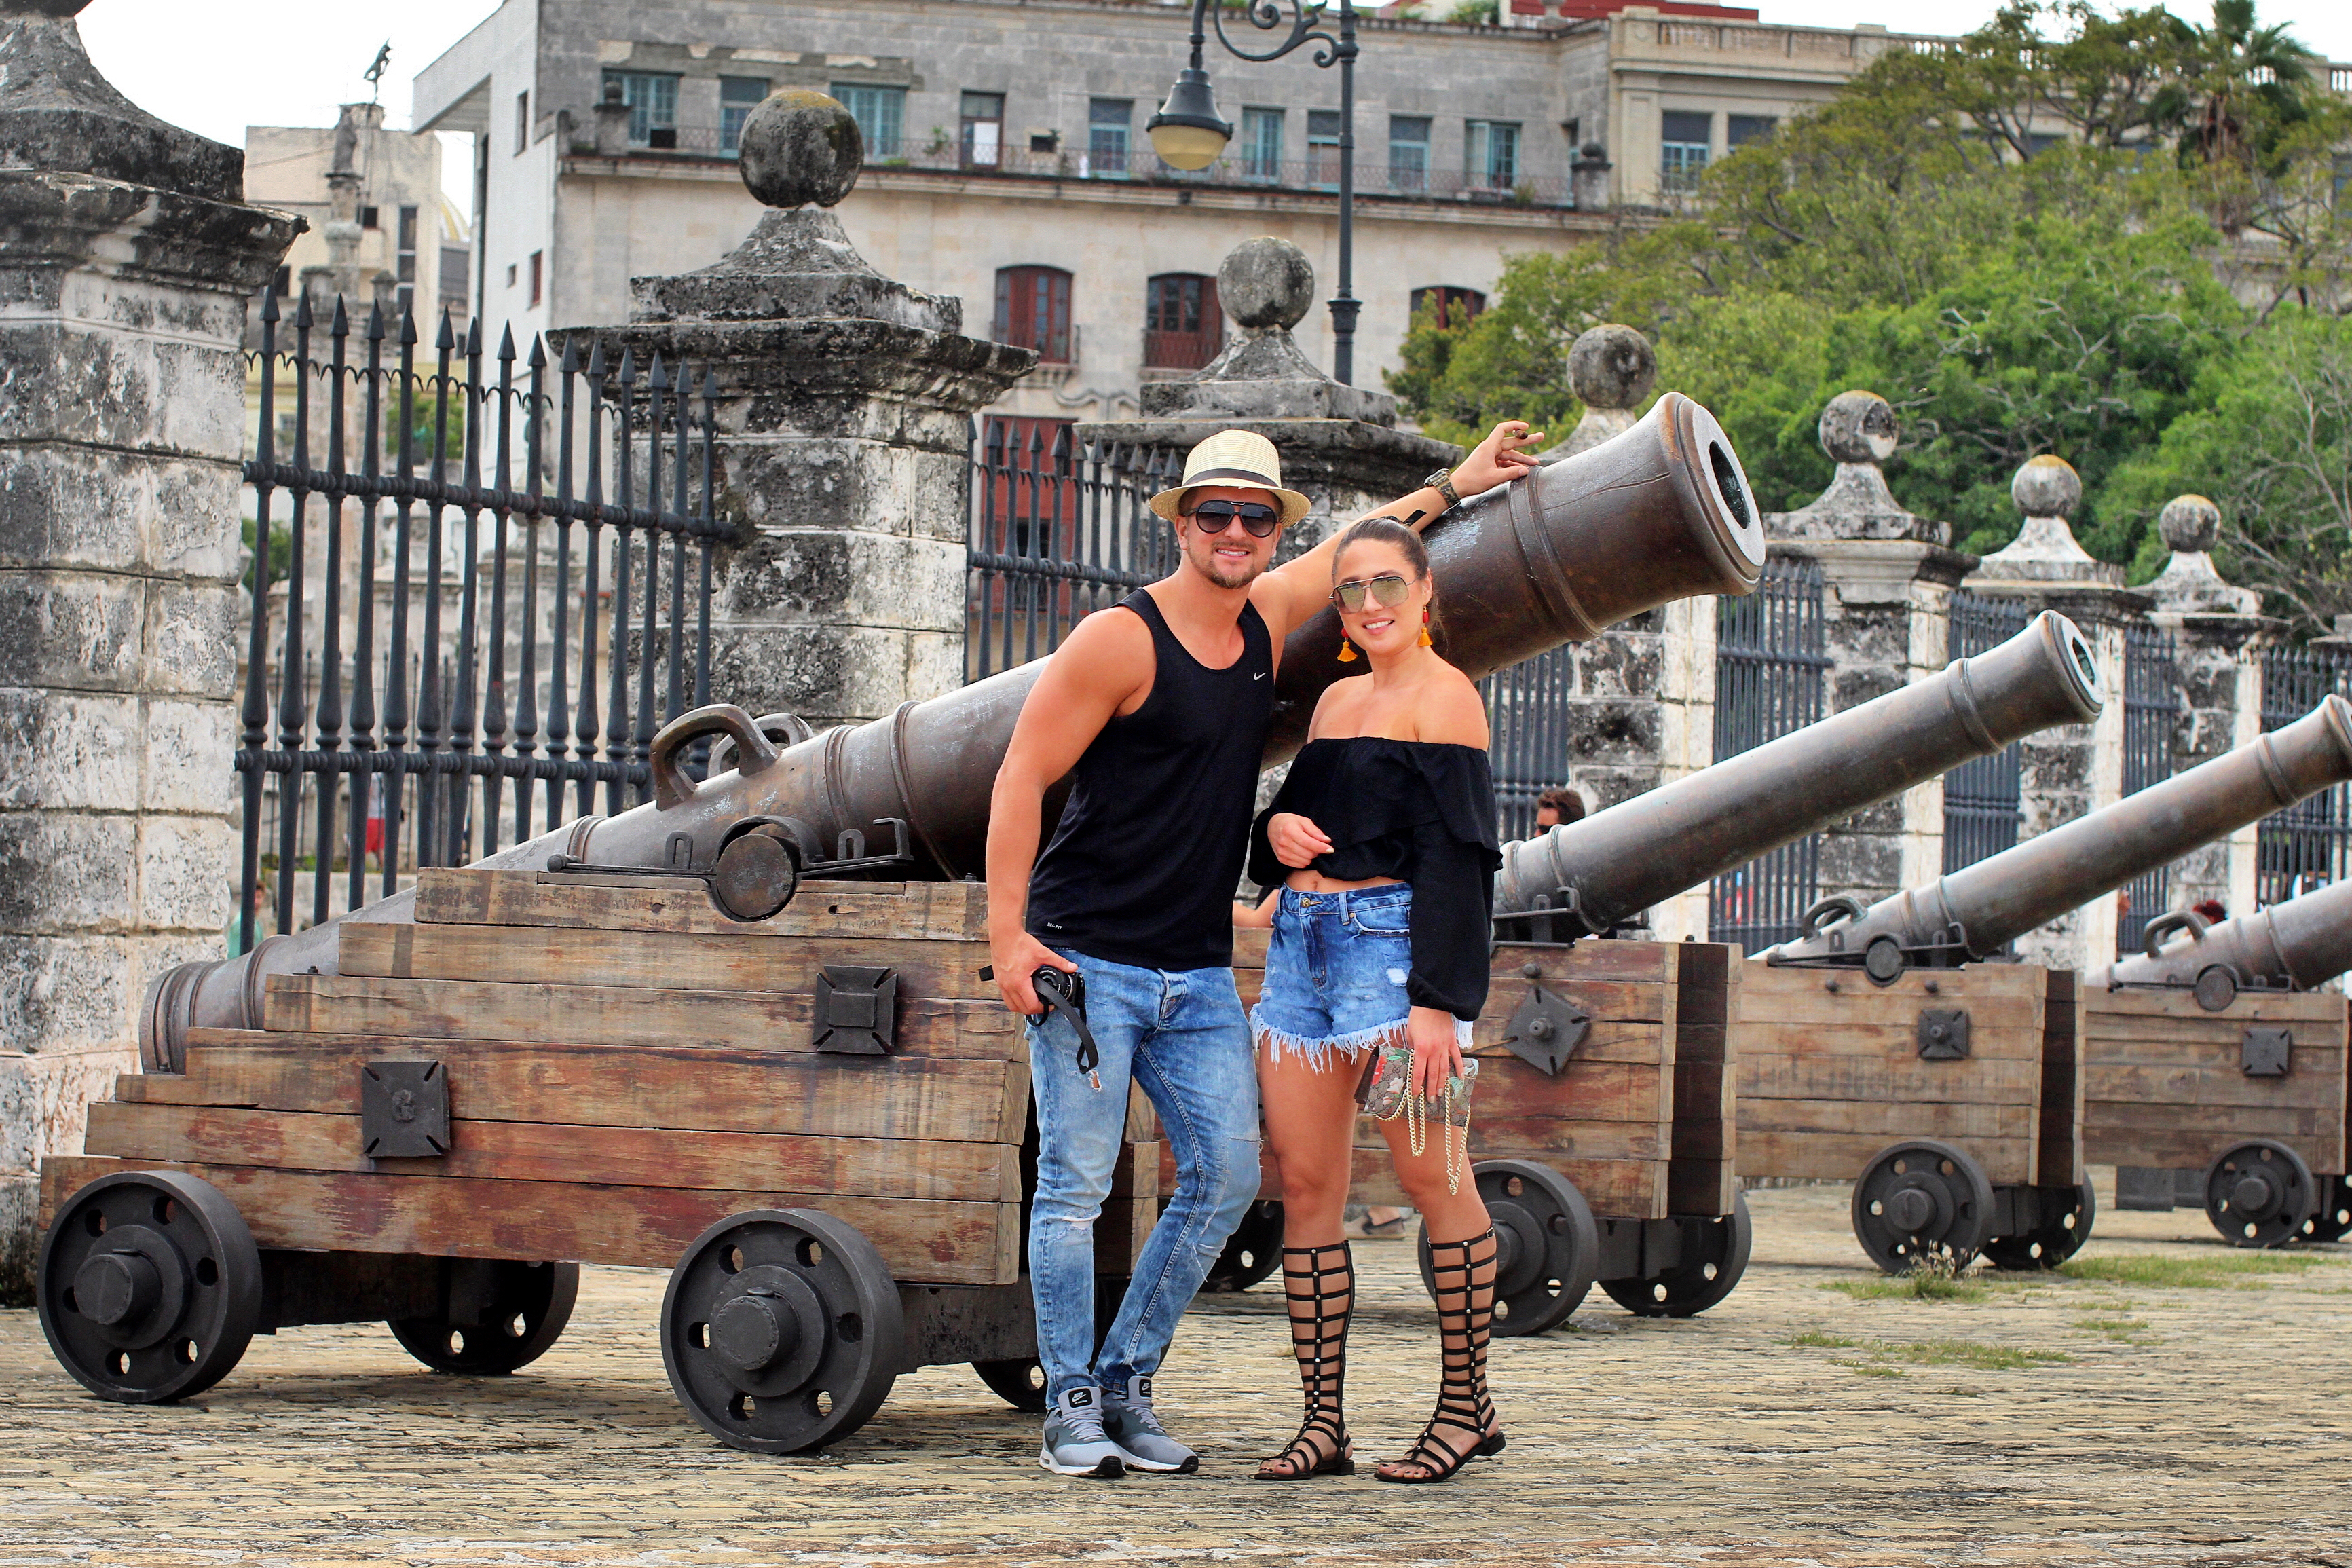 outside-museum-cannons-cuba